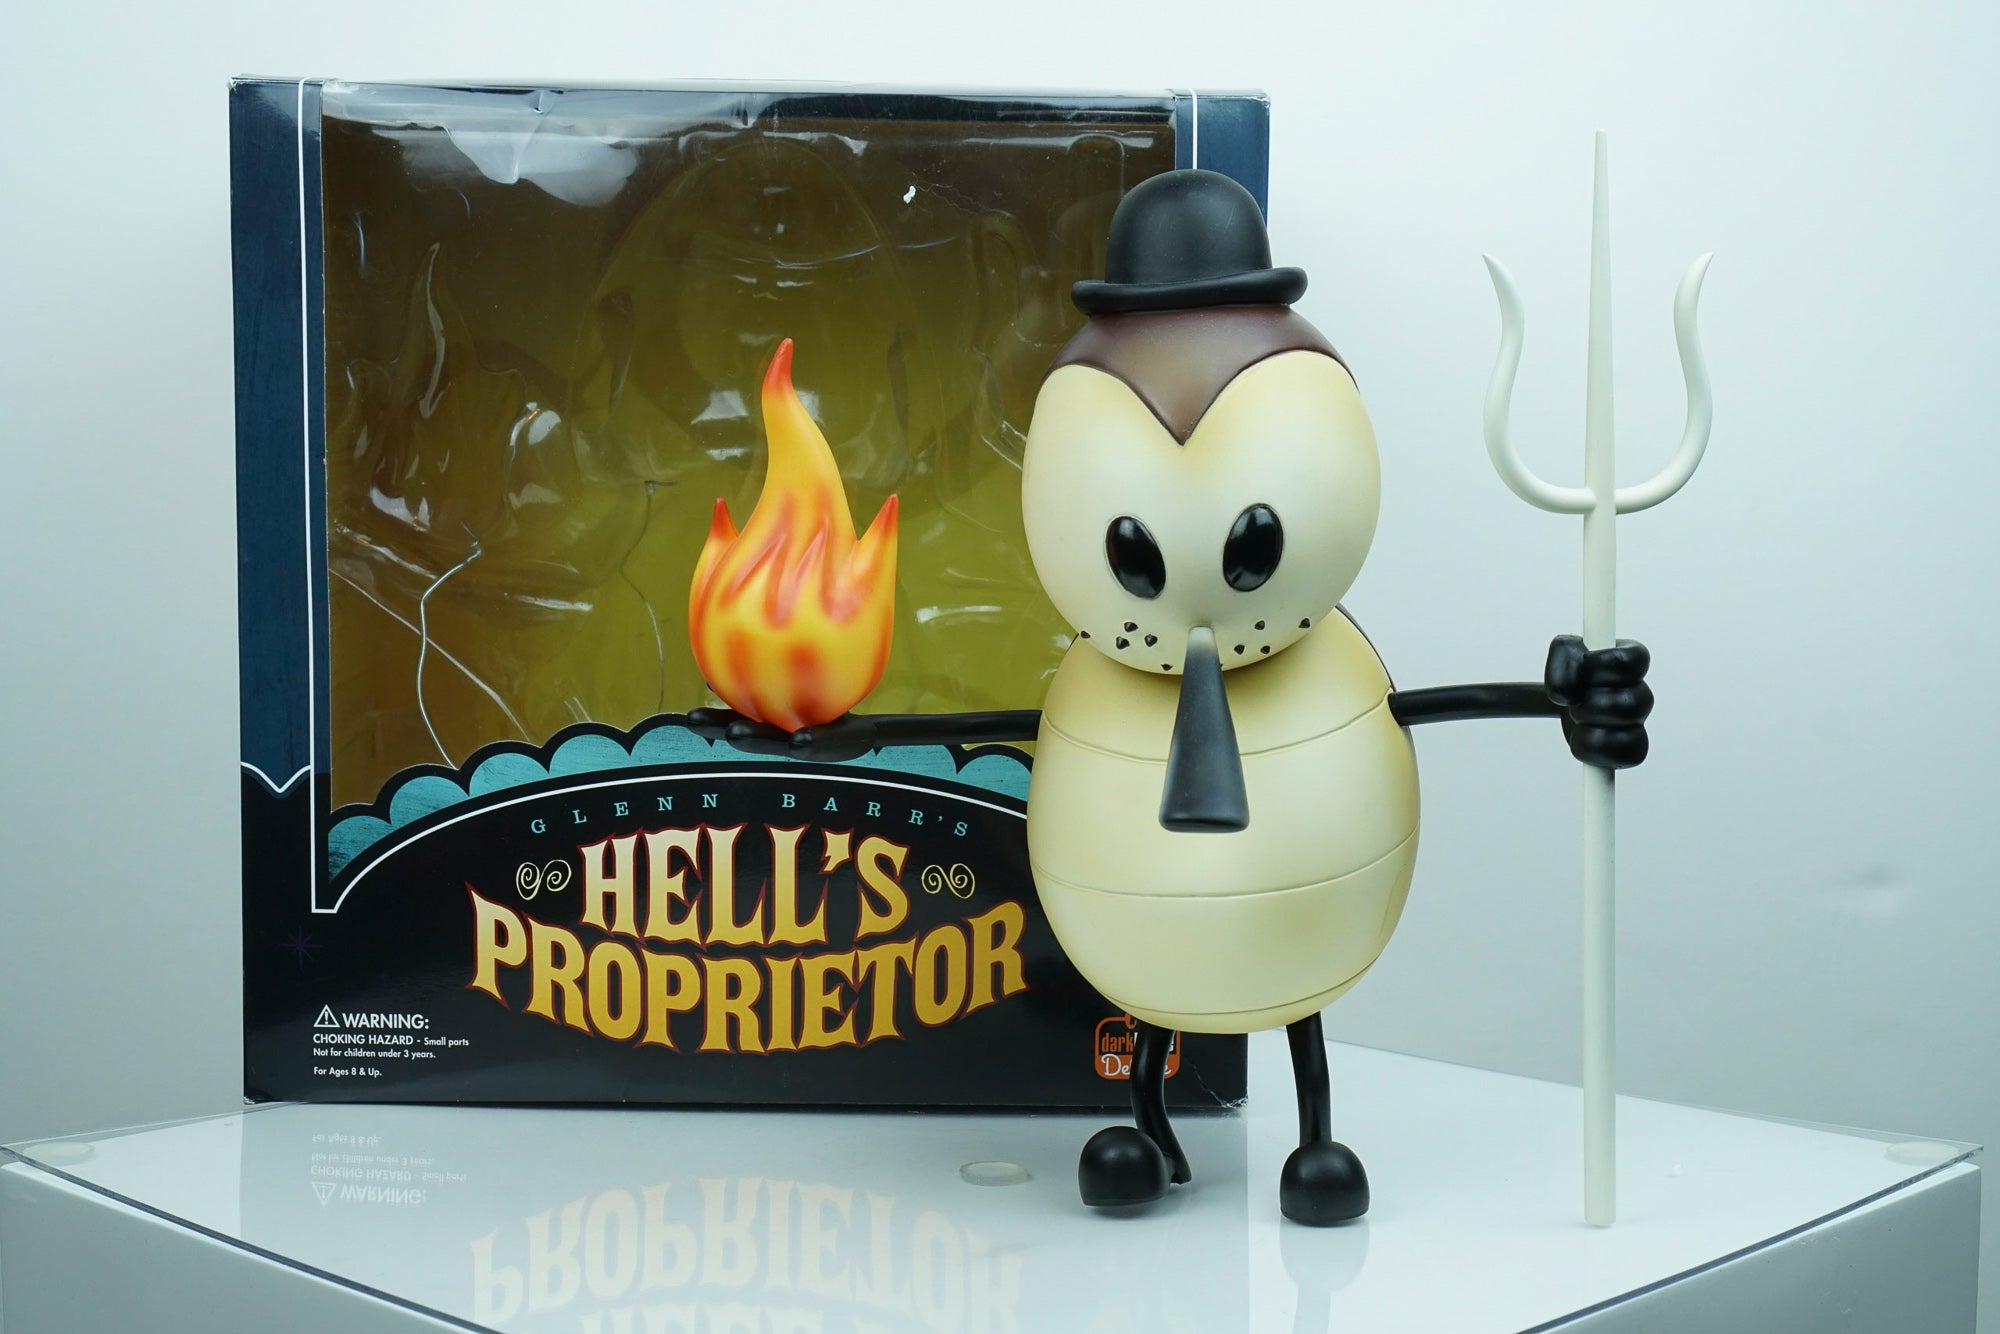 """Hell's Proprietor (Brown)"" by Glenn Barr x Dark Horse Deluxe"